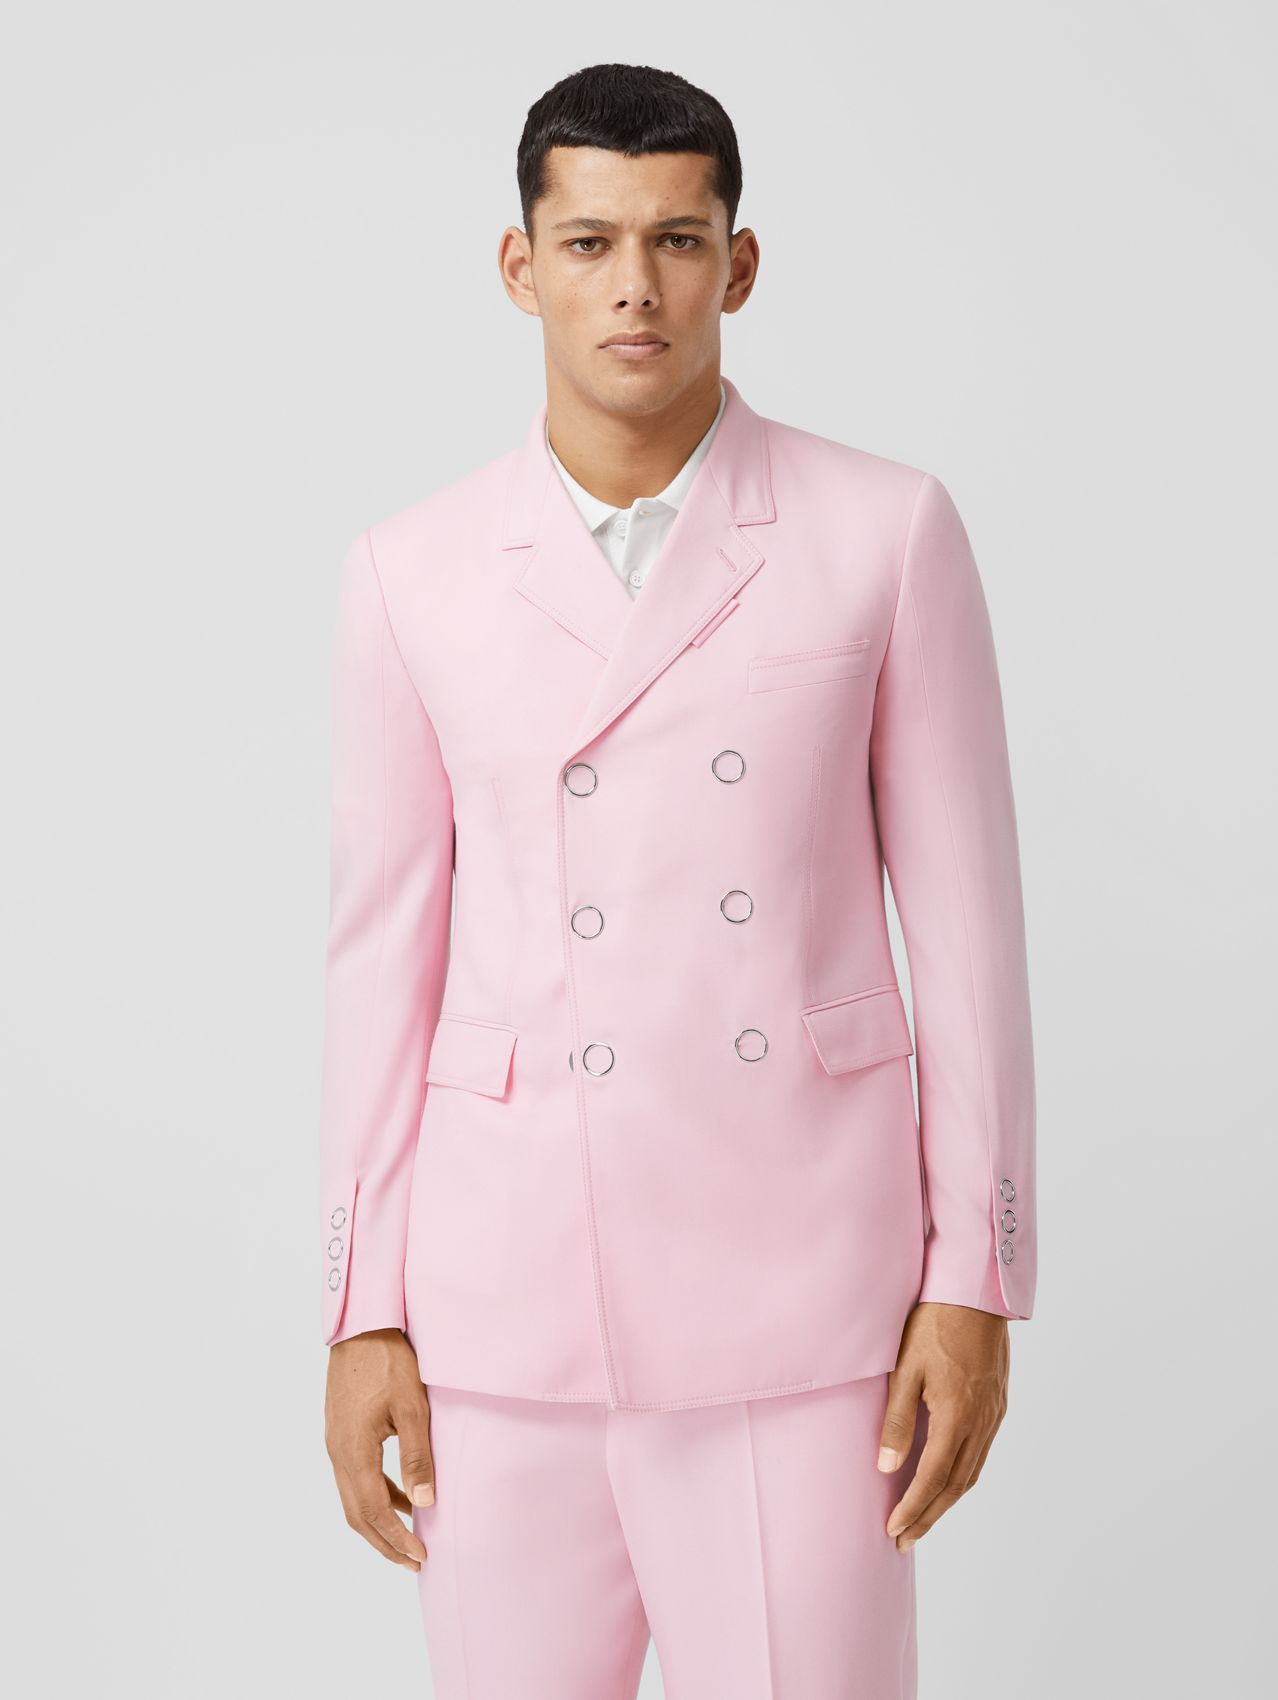 Slim Fit Press-stud Tumbled Wool Tailored Jacket in Candy Pink